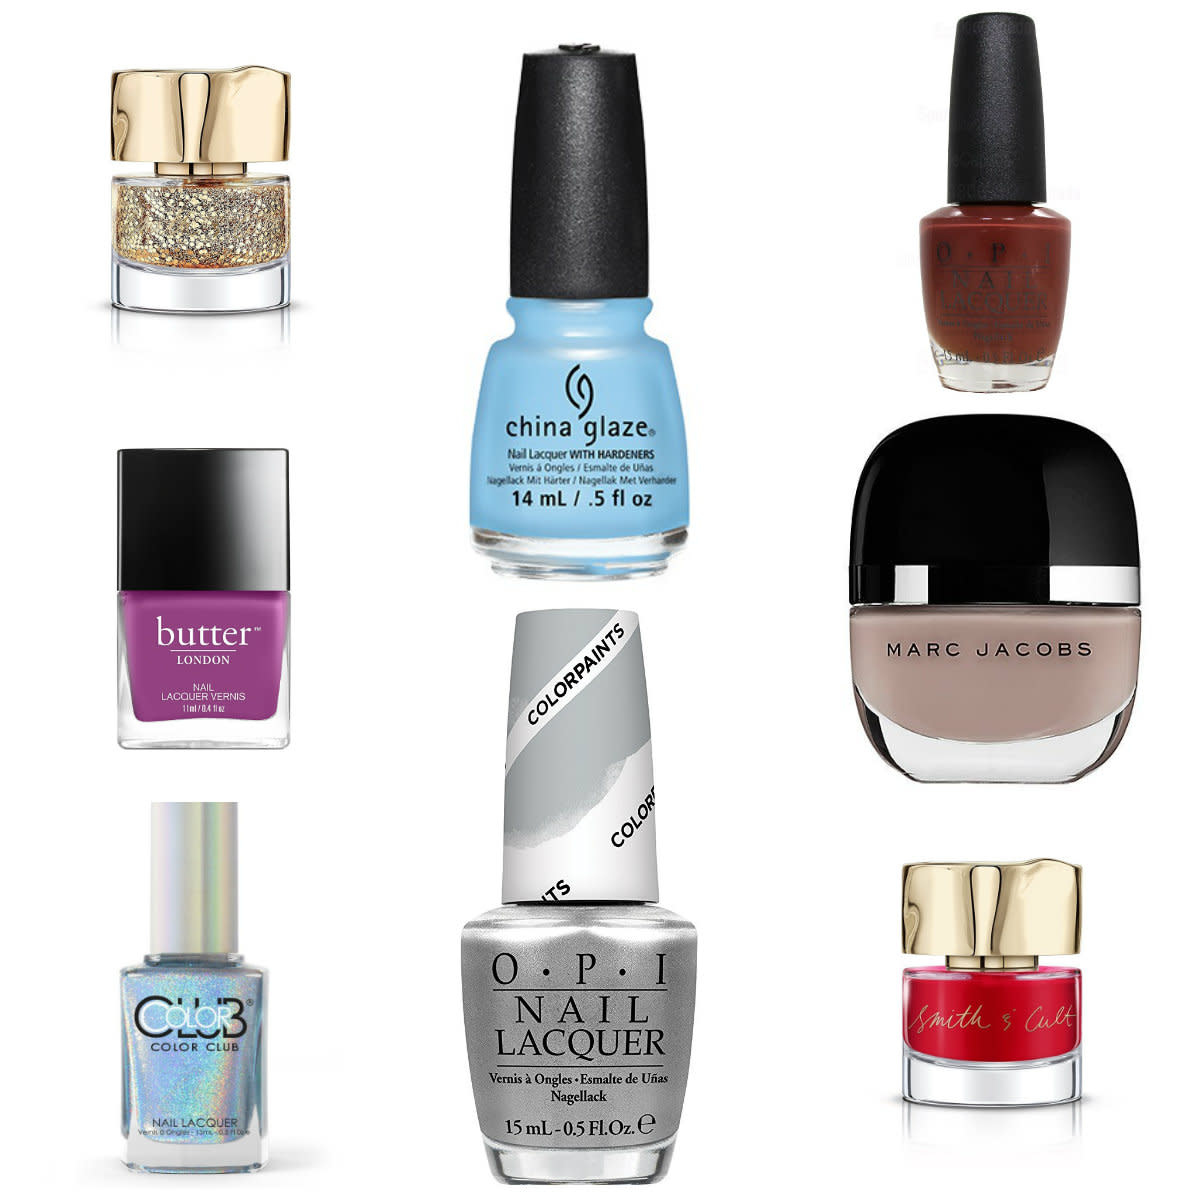 Top 10 Nail Polish Colors for Winter 2017-2018